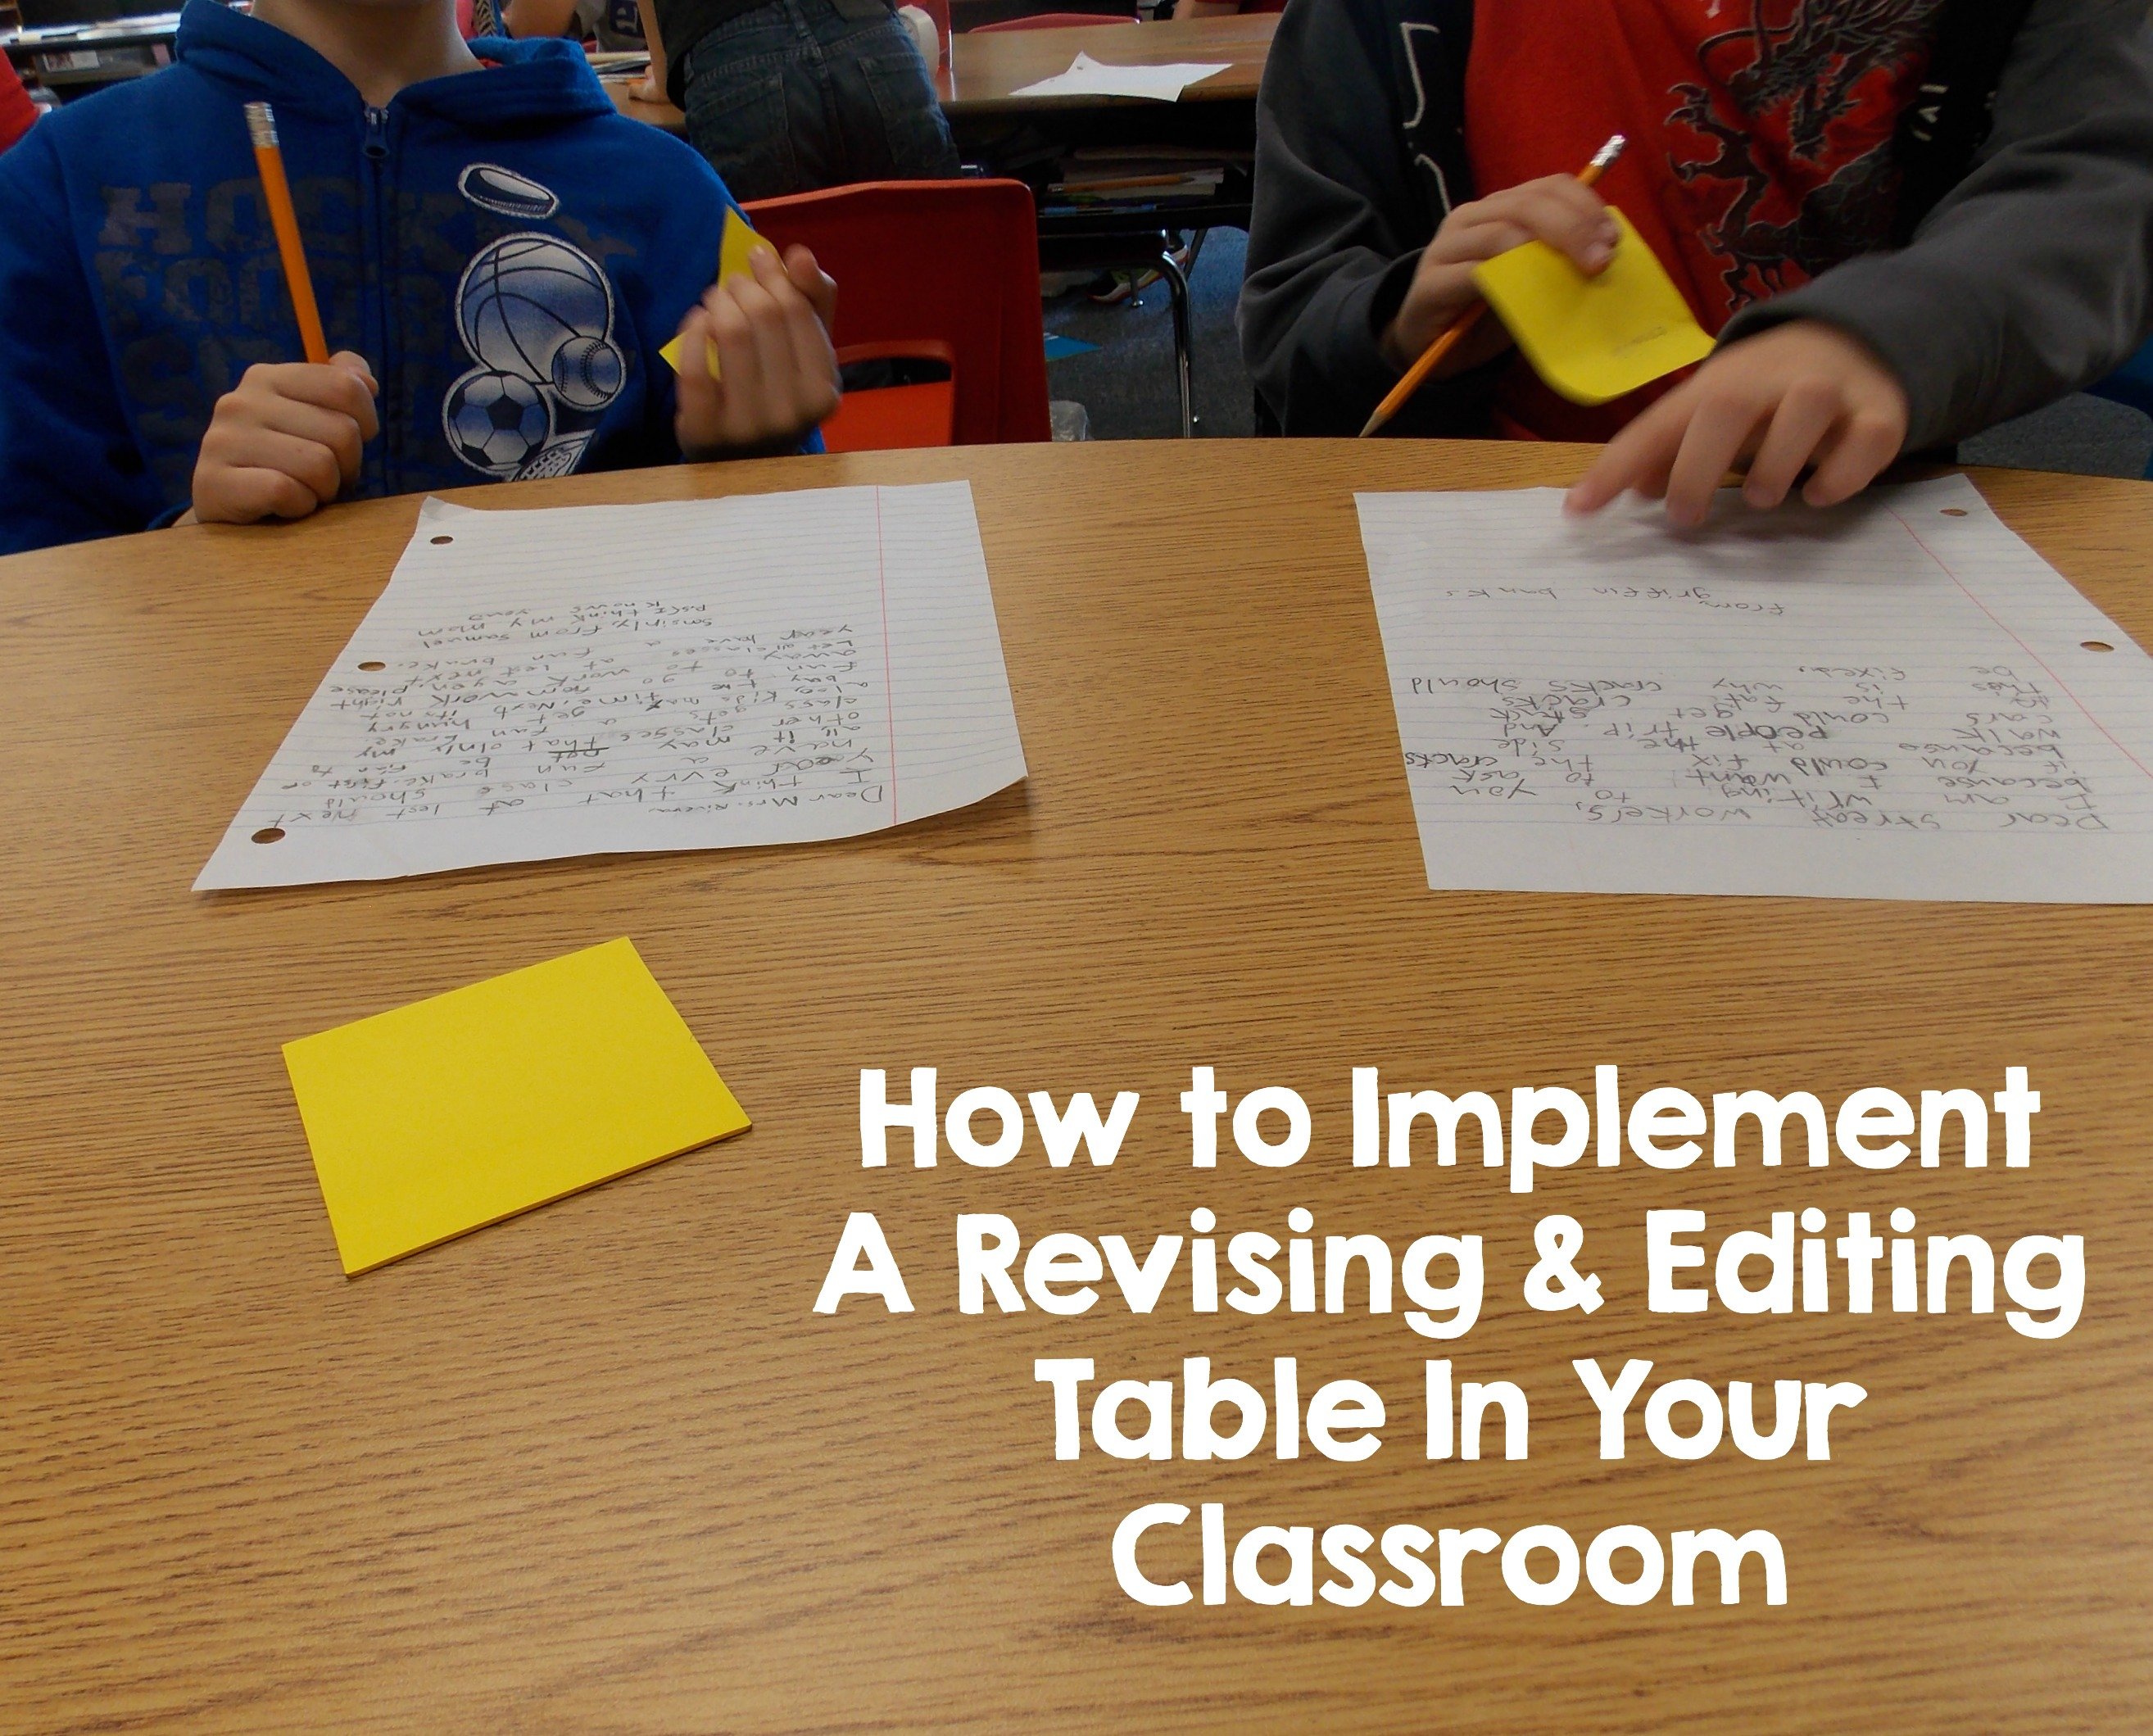 How To Implement A Revising And Editing Table In Your Classroom